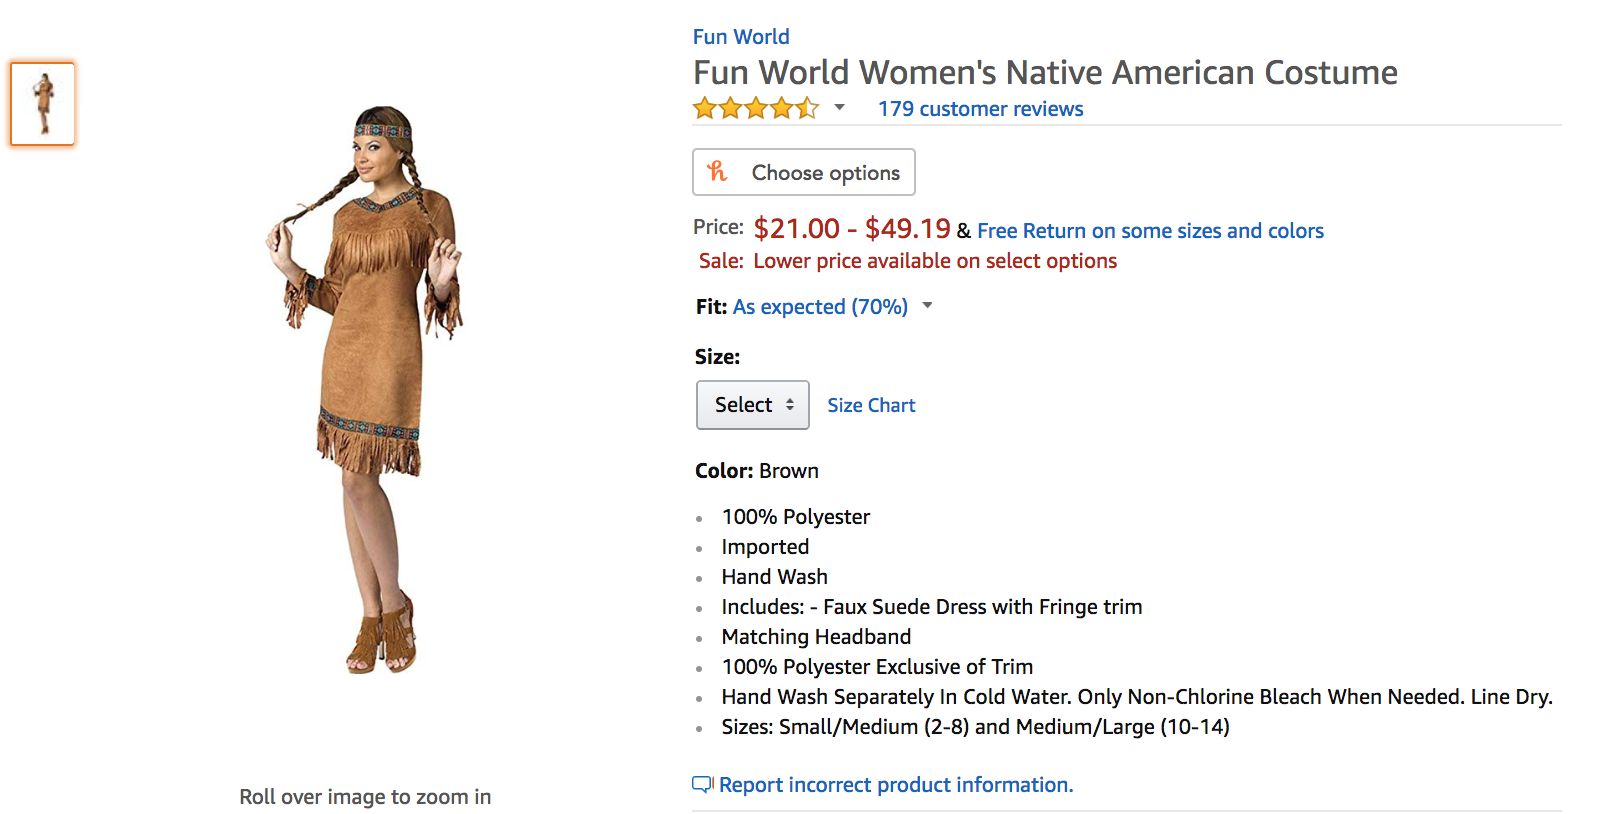 nativeamerican-1536859591075-1536859594345.png